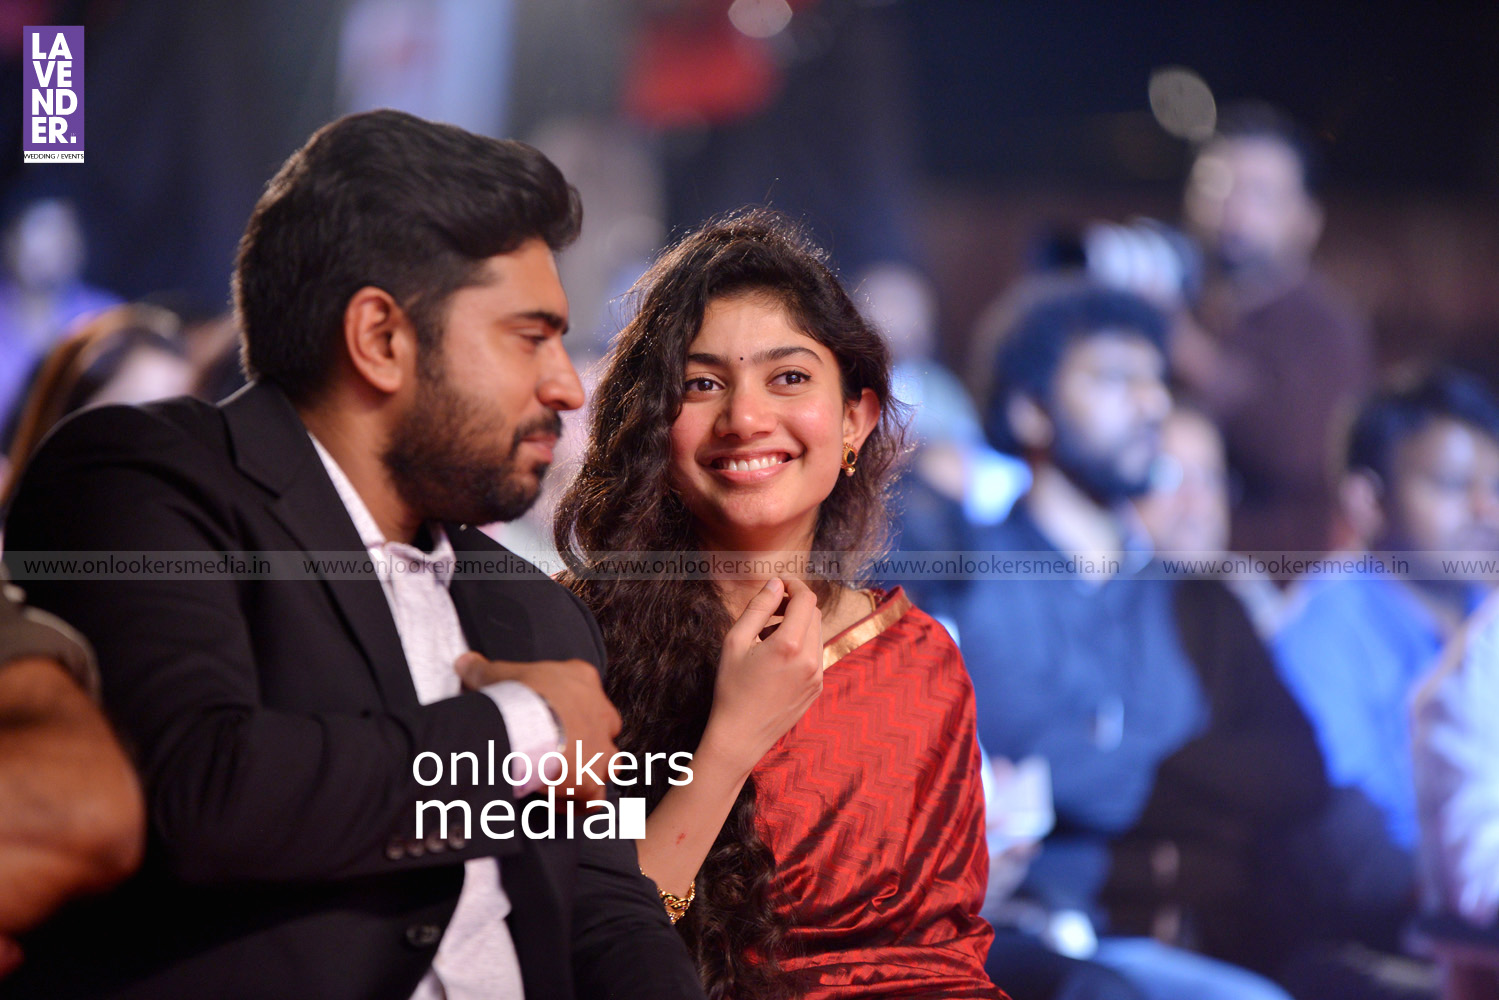 http://onlookersmedia.in/wp-content/uploads/2016/02/Nivin-Pauly-at-Asianet-Film-Award-2016-10.jpg